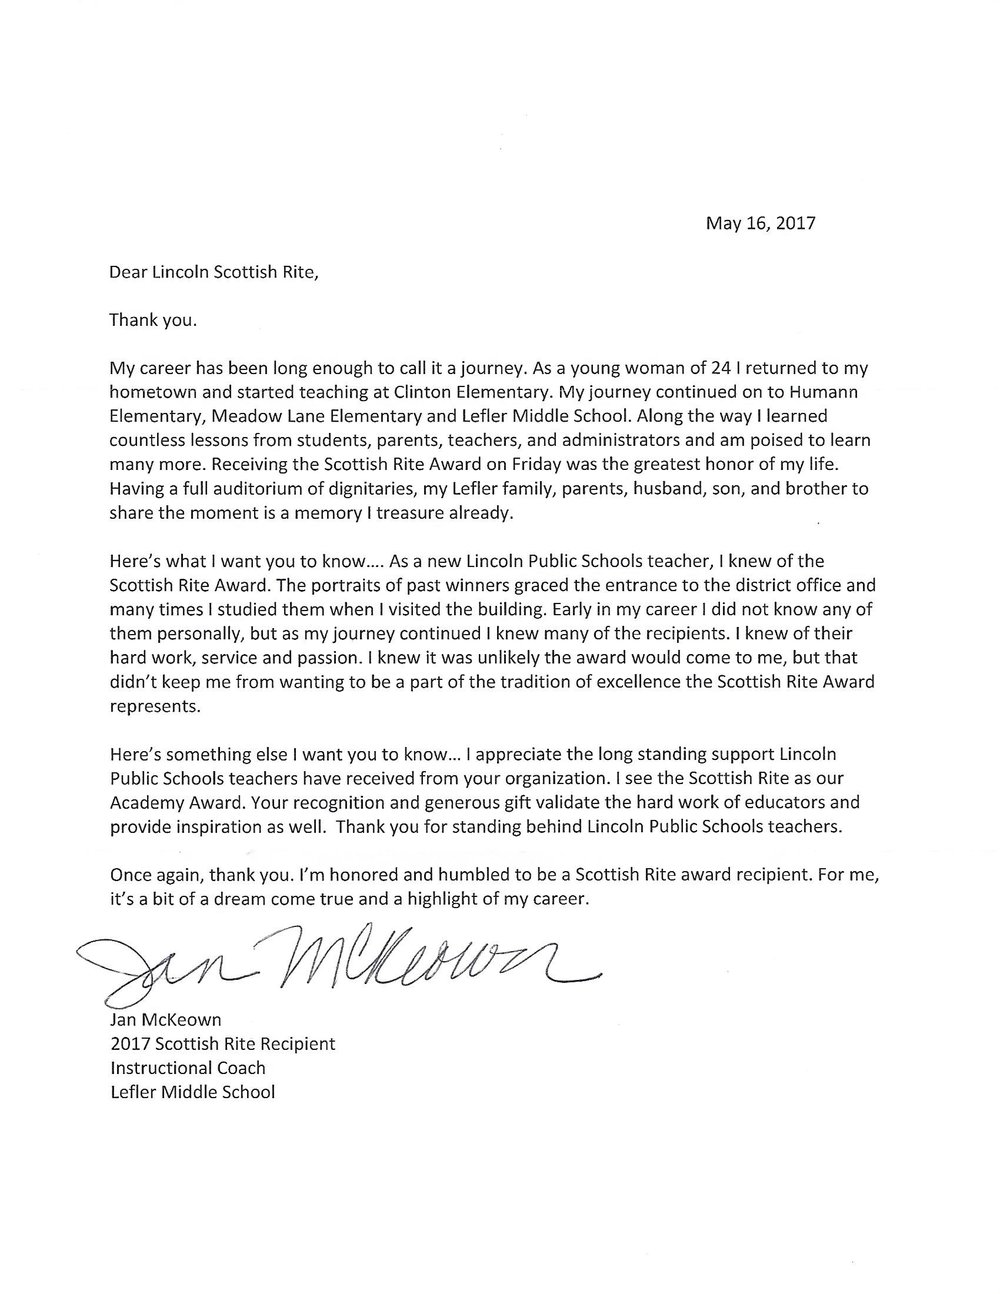 Click Above To Read A Thank You Letter From 2017 Distinguished Teacher Of  The Year Jan